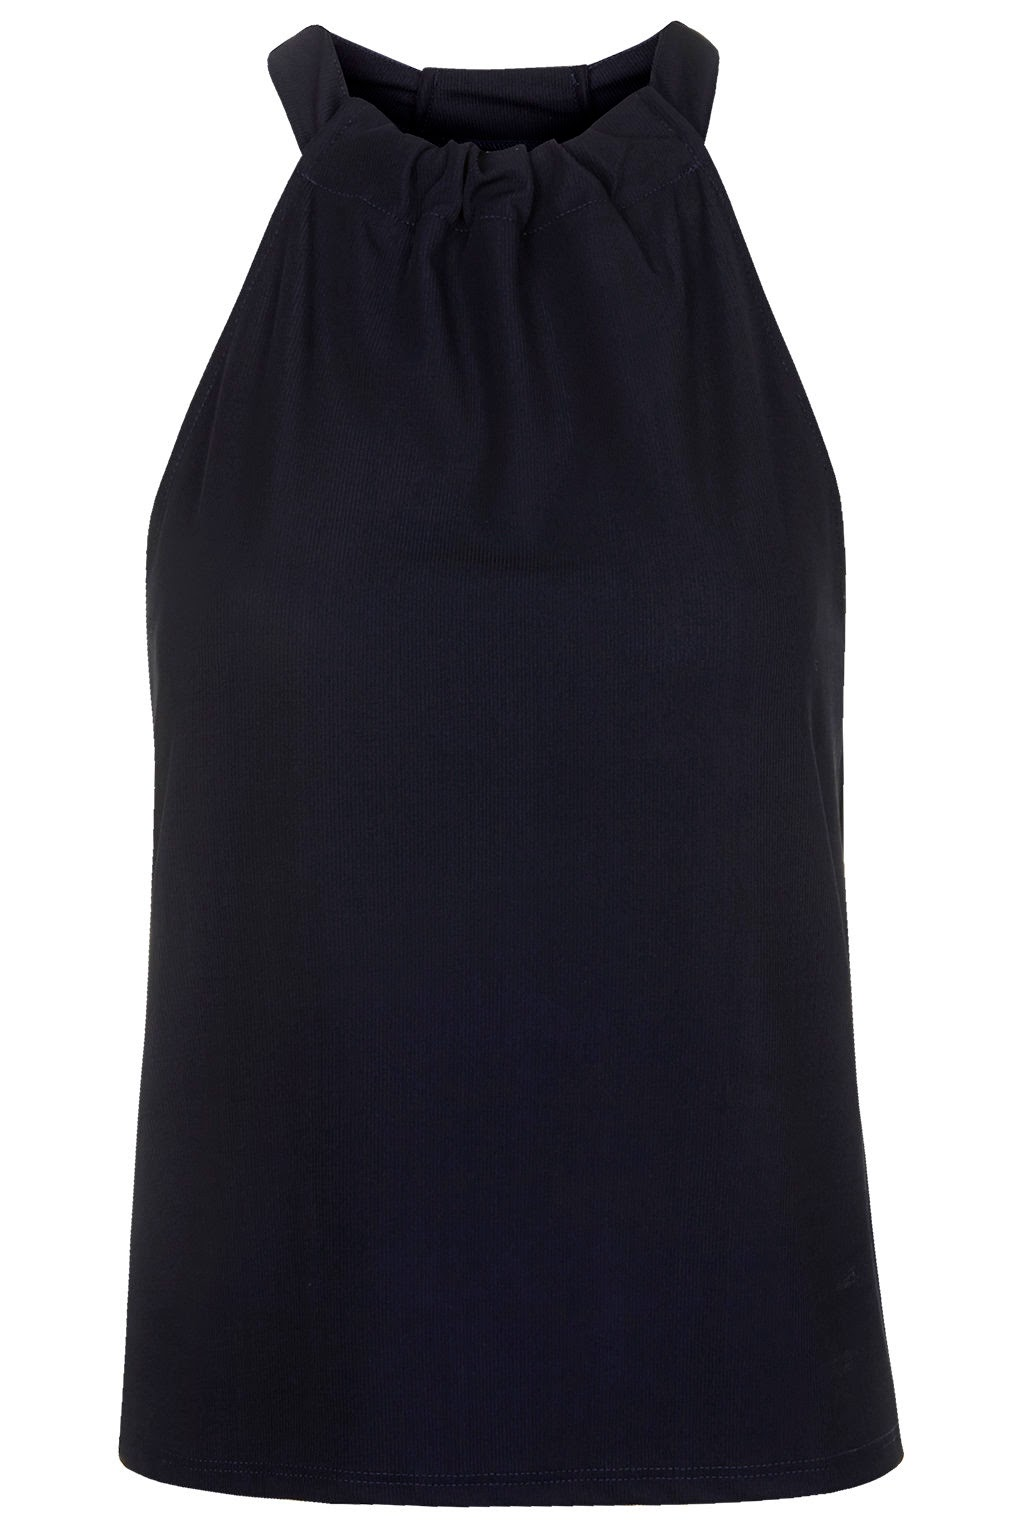 navy halter neck top, topshop halter neck top,